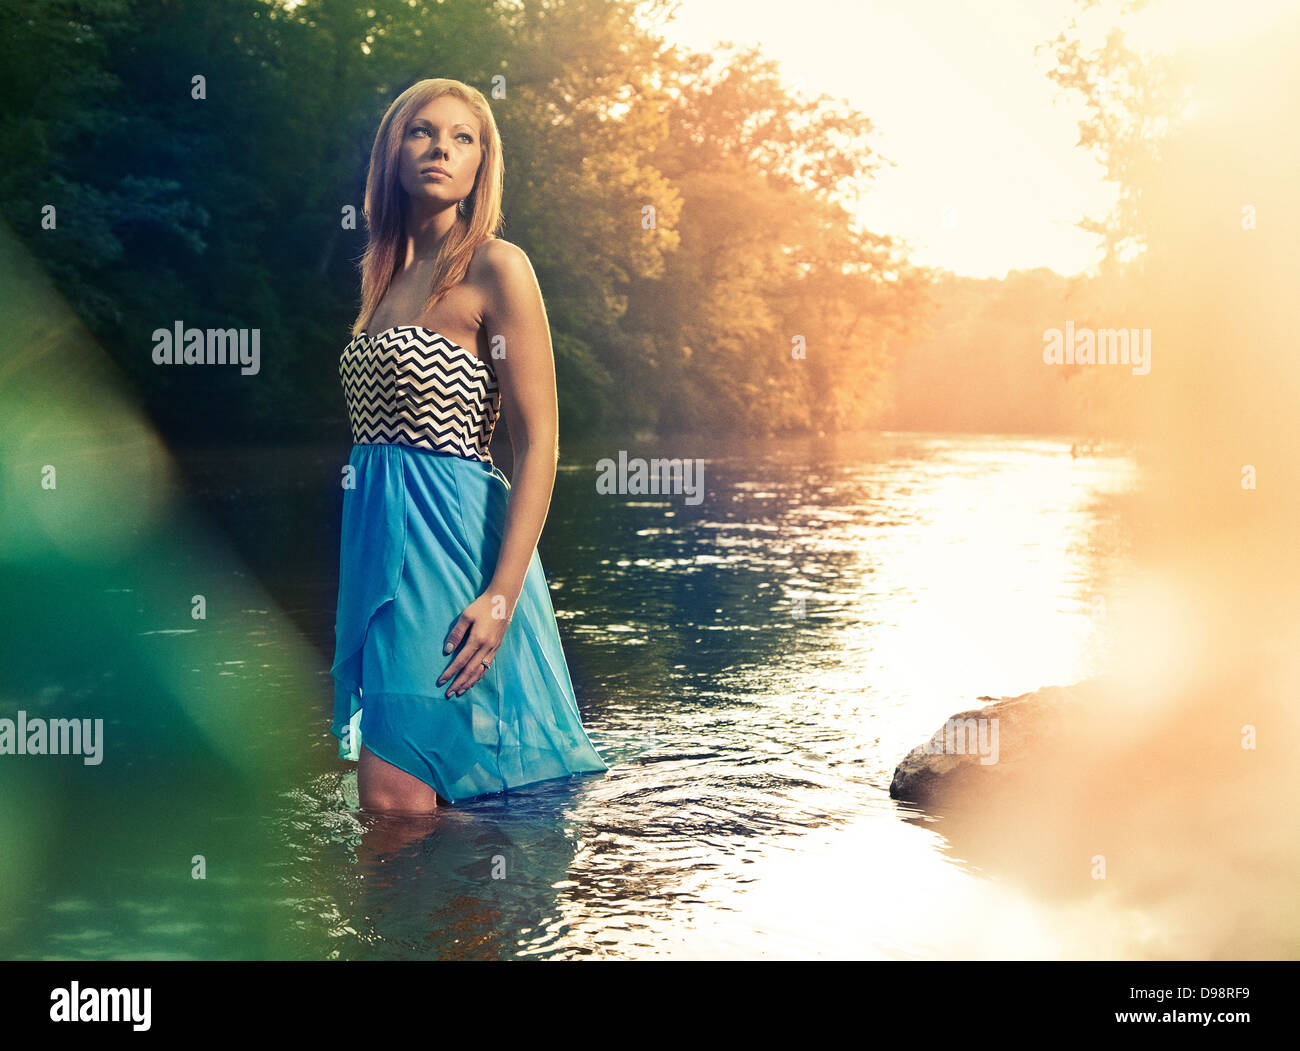 Woman in blue dress walking in river during sunset - Stock Image